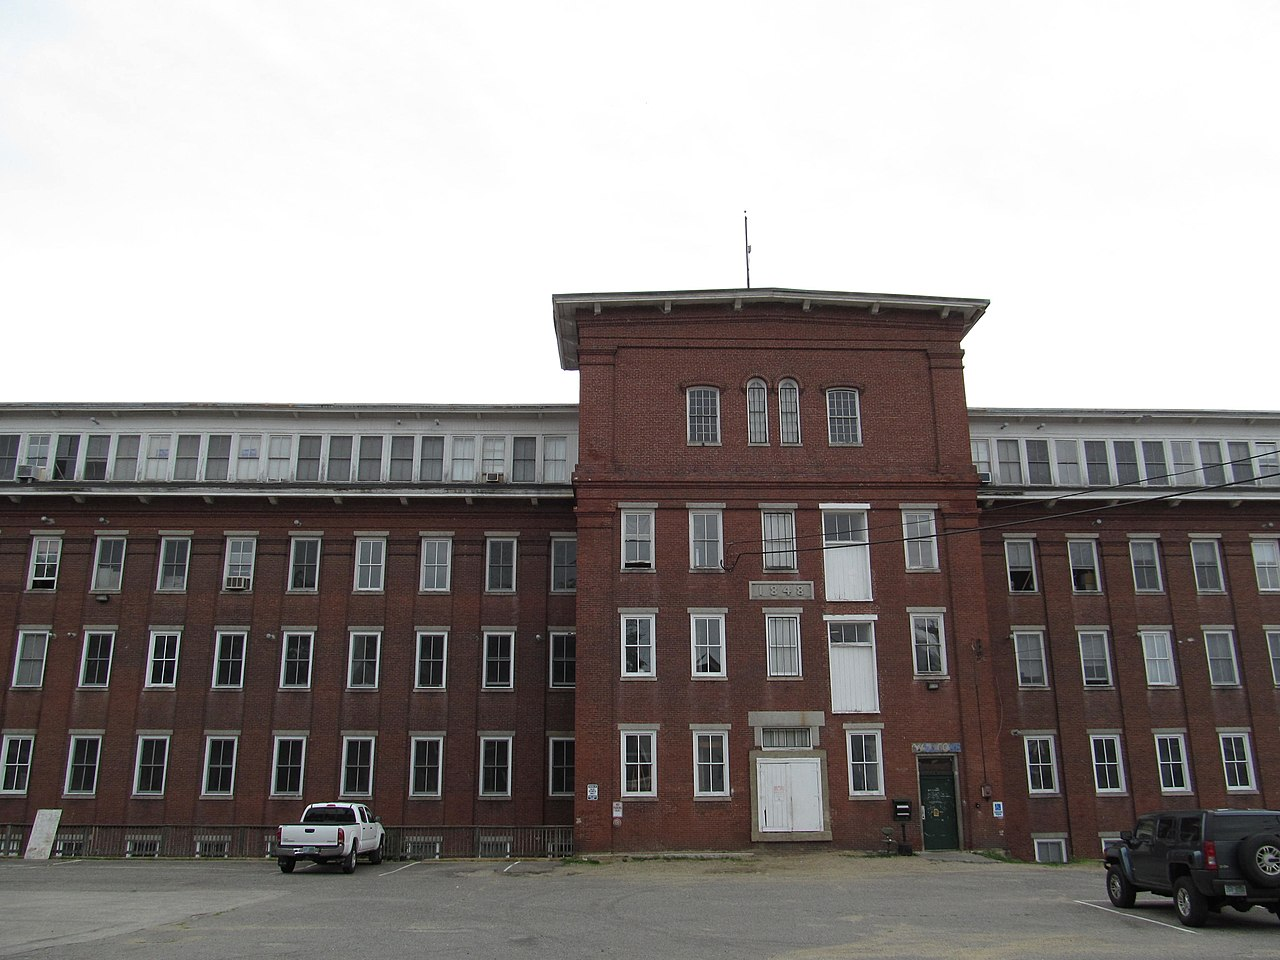 """falls mills dating """"i'm dating central falls  more successful redevelopment turned an old central falls mill into a luxury  rhode island inches out of deep, dark recession."""